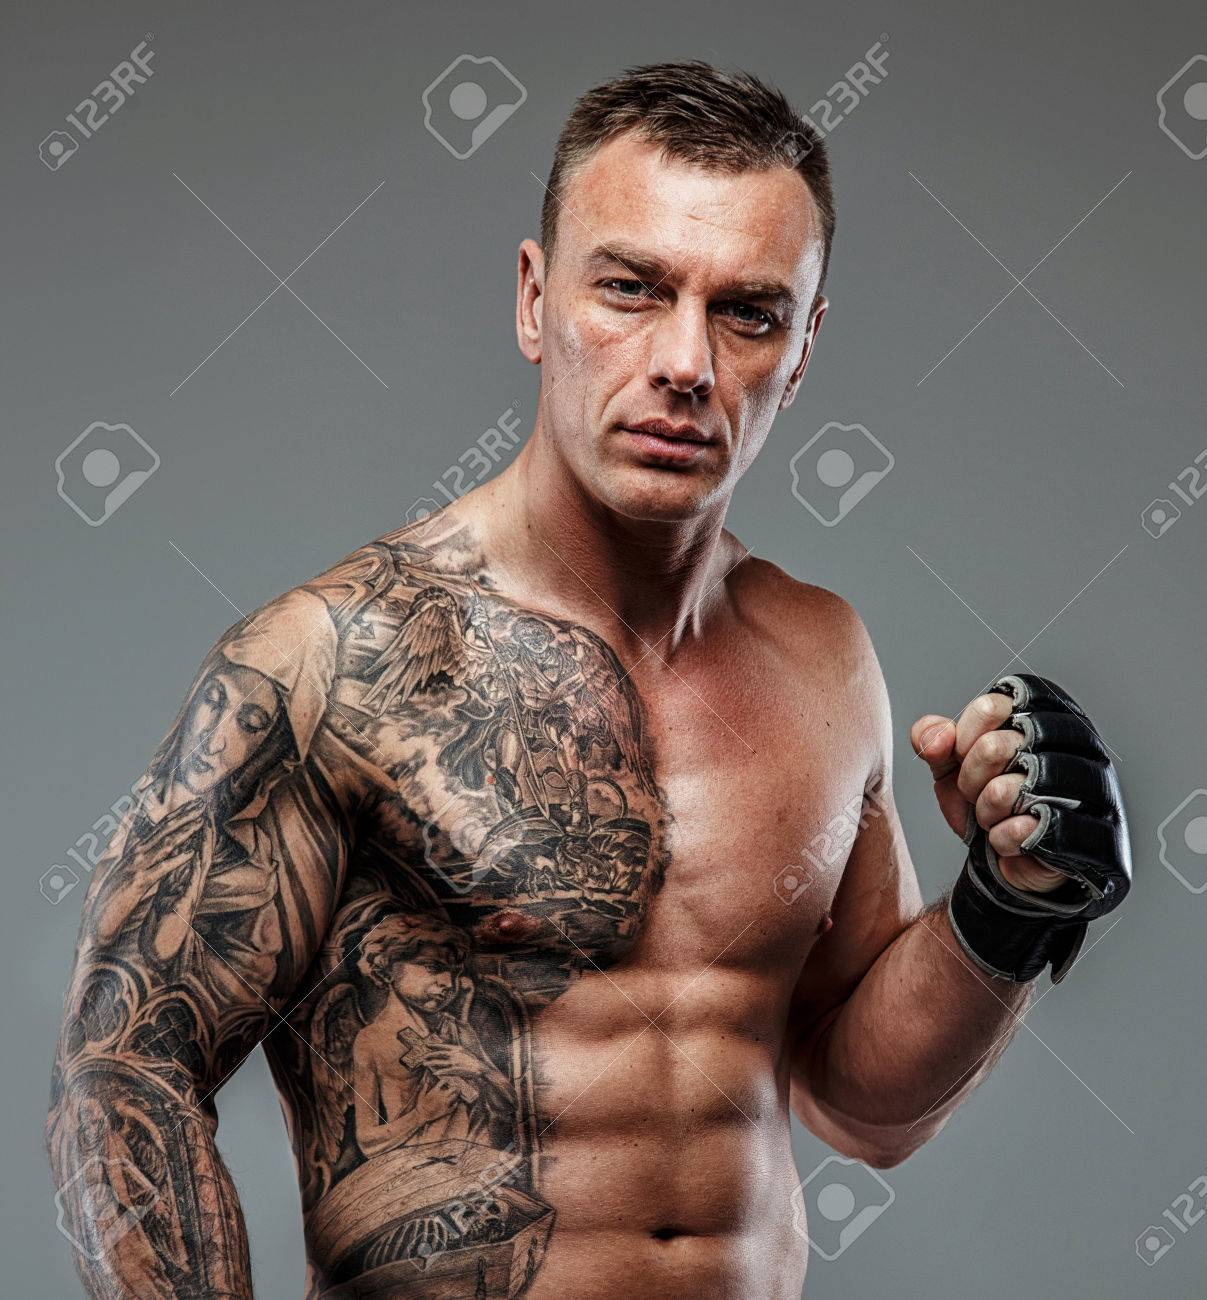 Strong muscular fighter with tattoo poses - 38249048